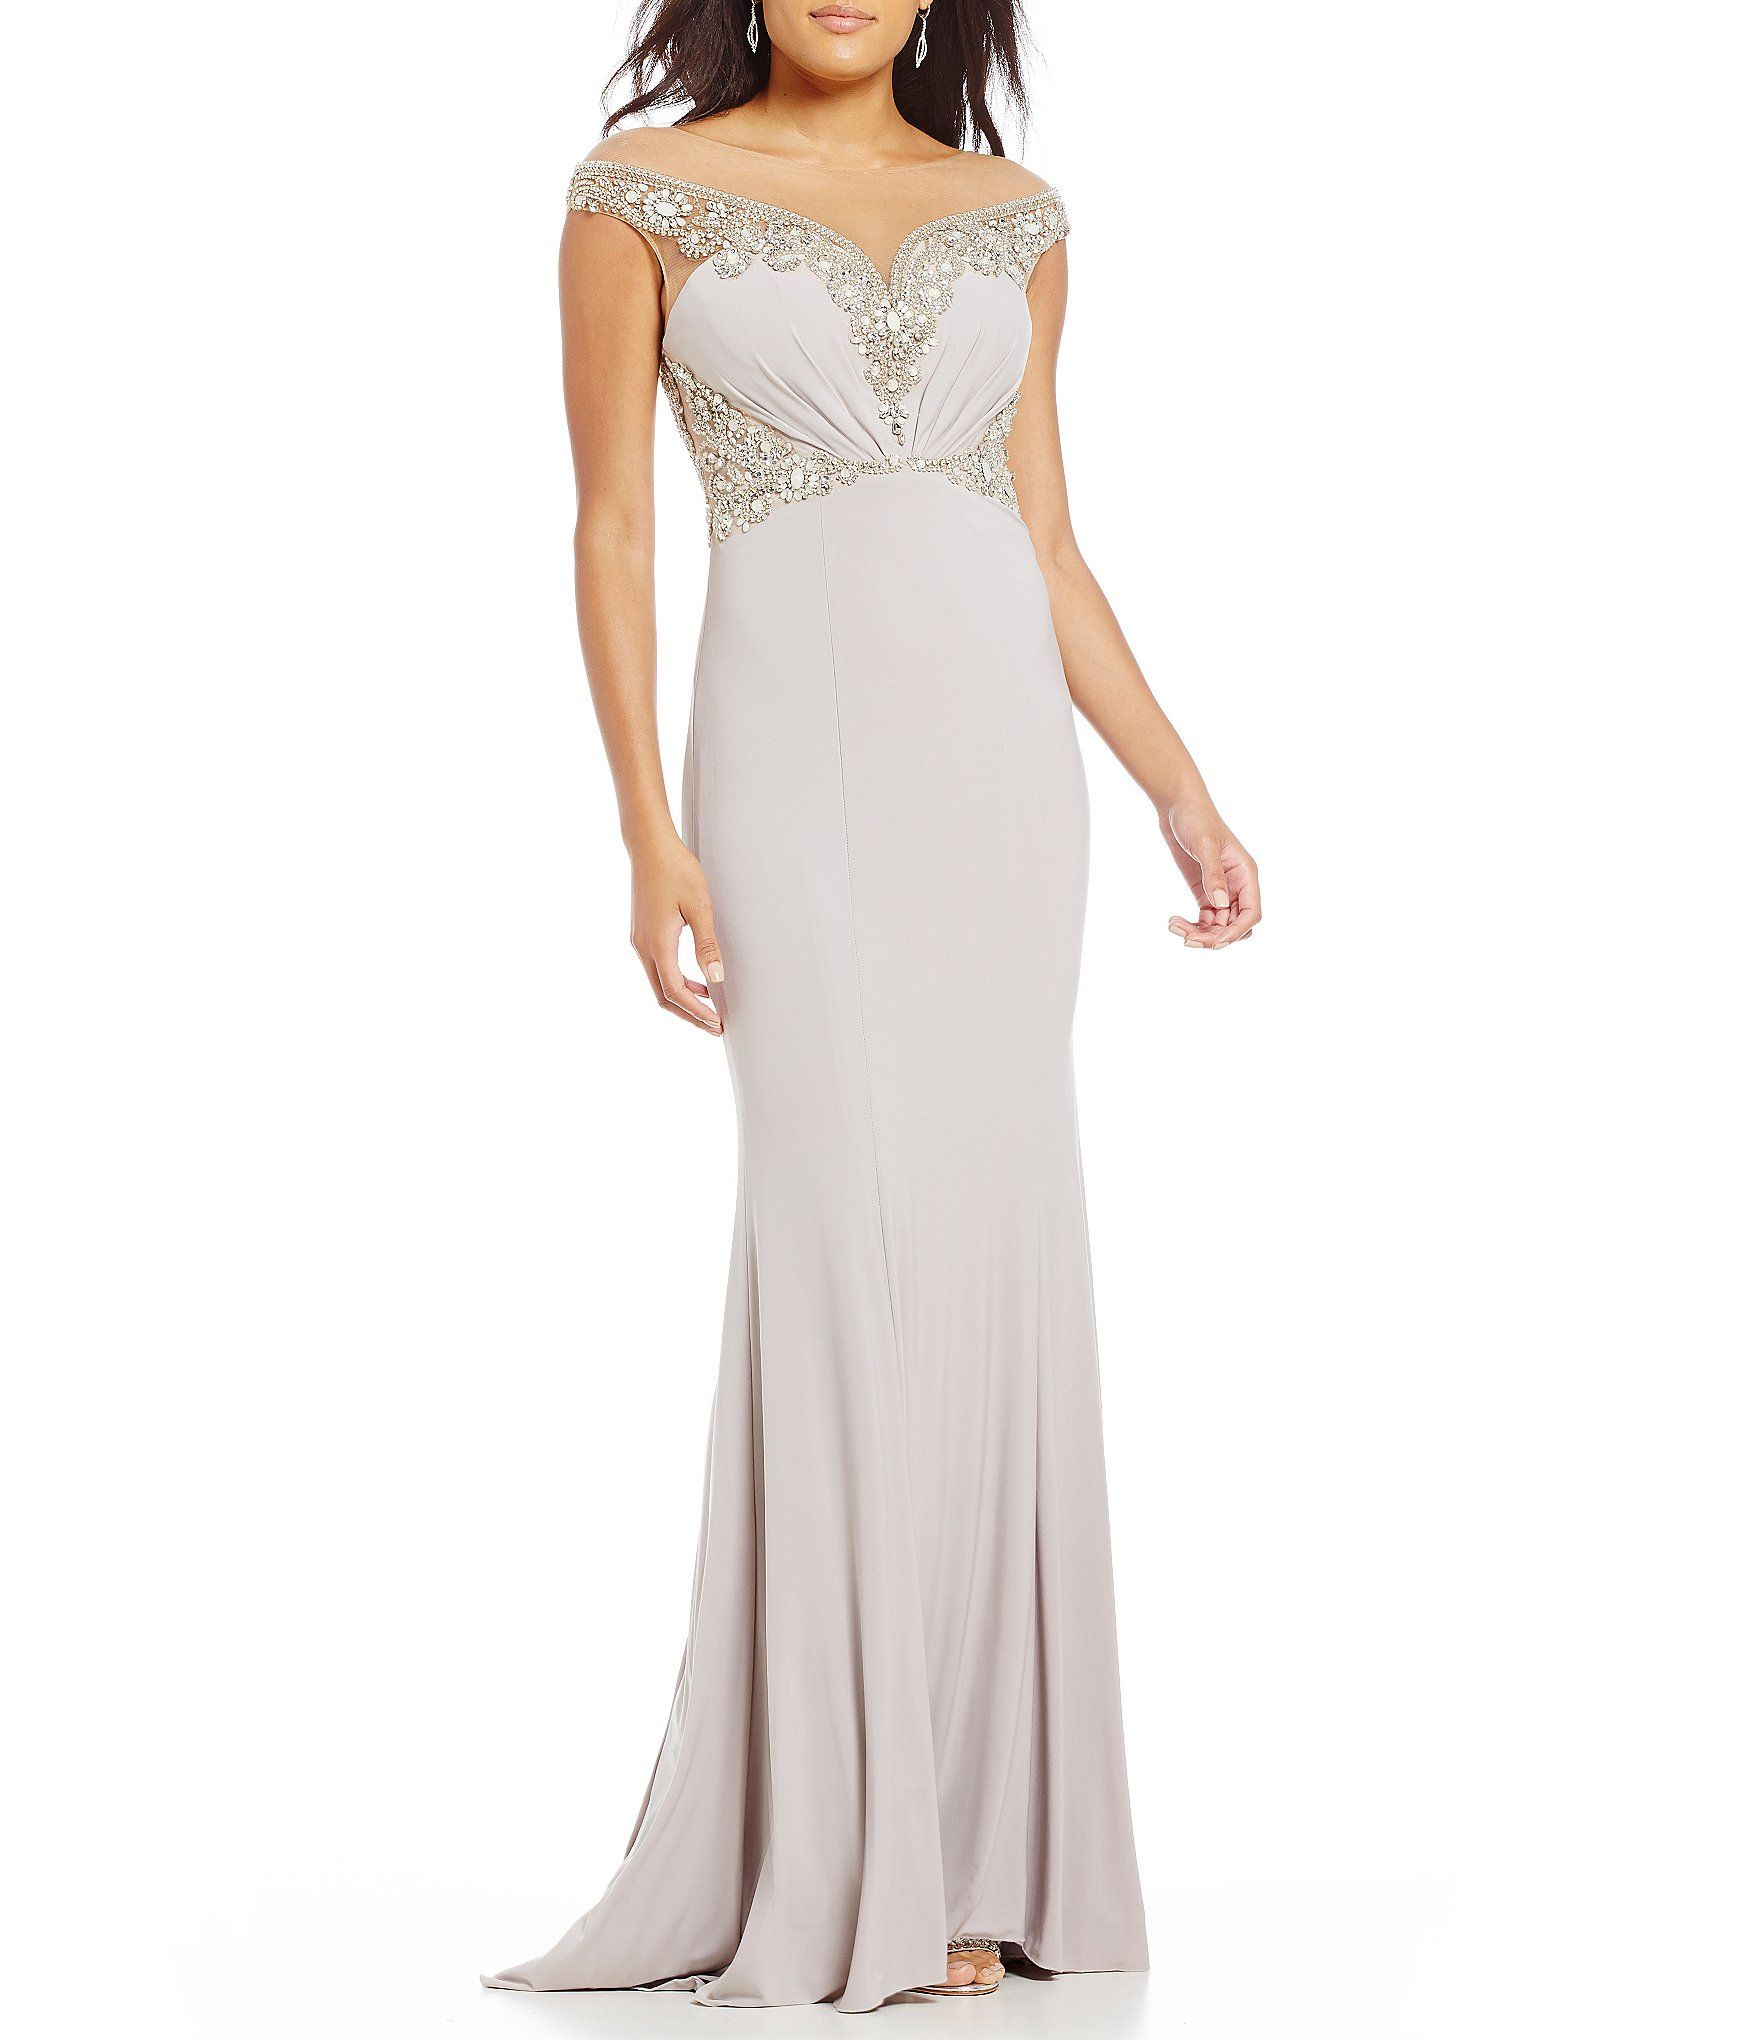 67714cd6a3f Terani Couture Illusion OffTheShoulder Beaded Gown  Dillards ...